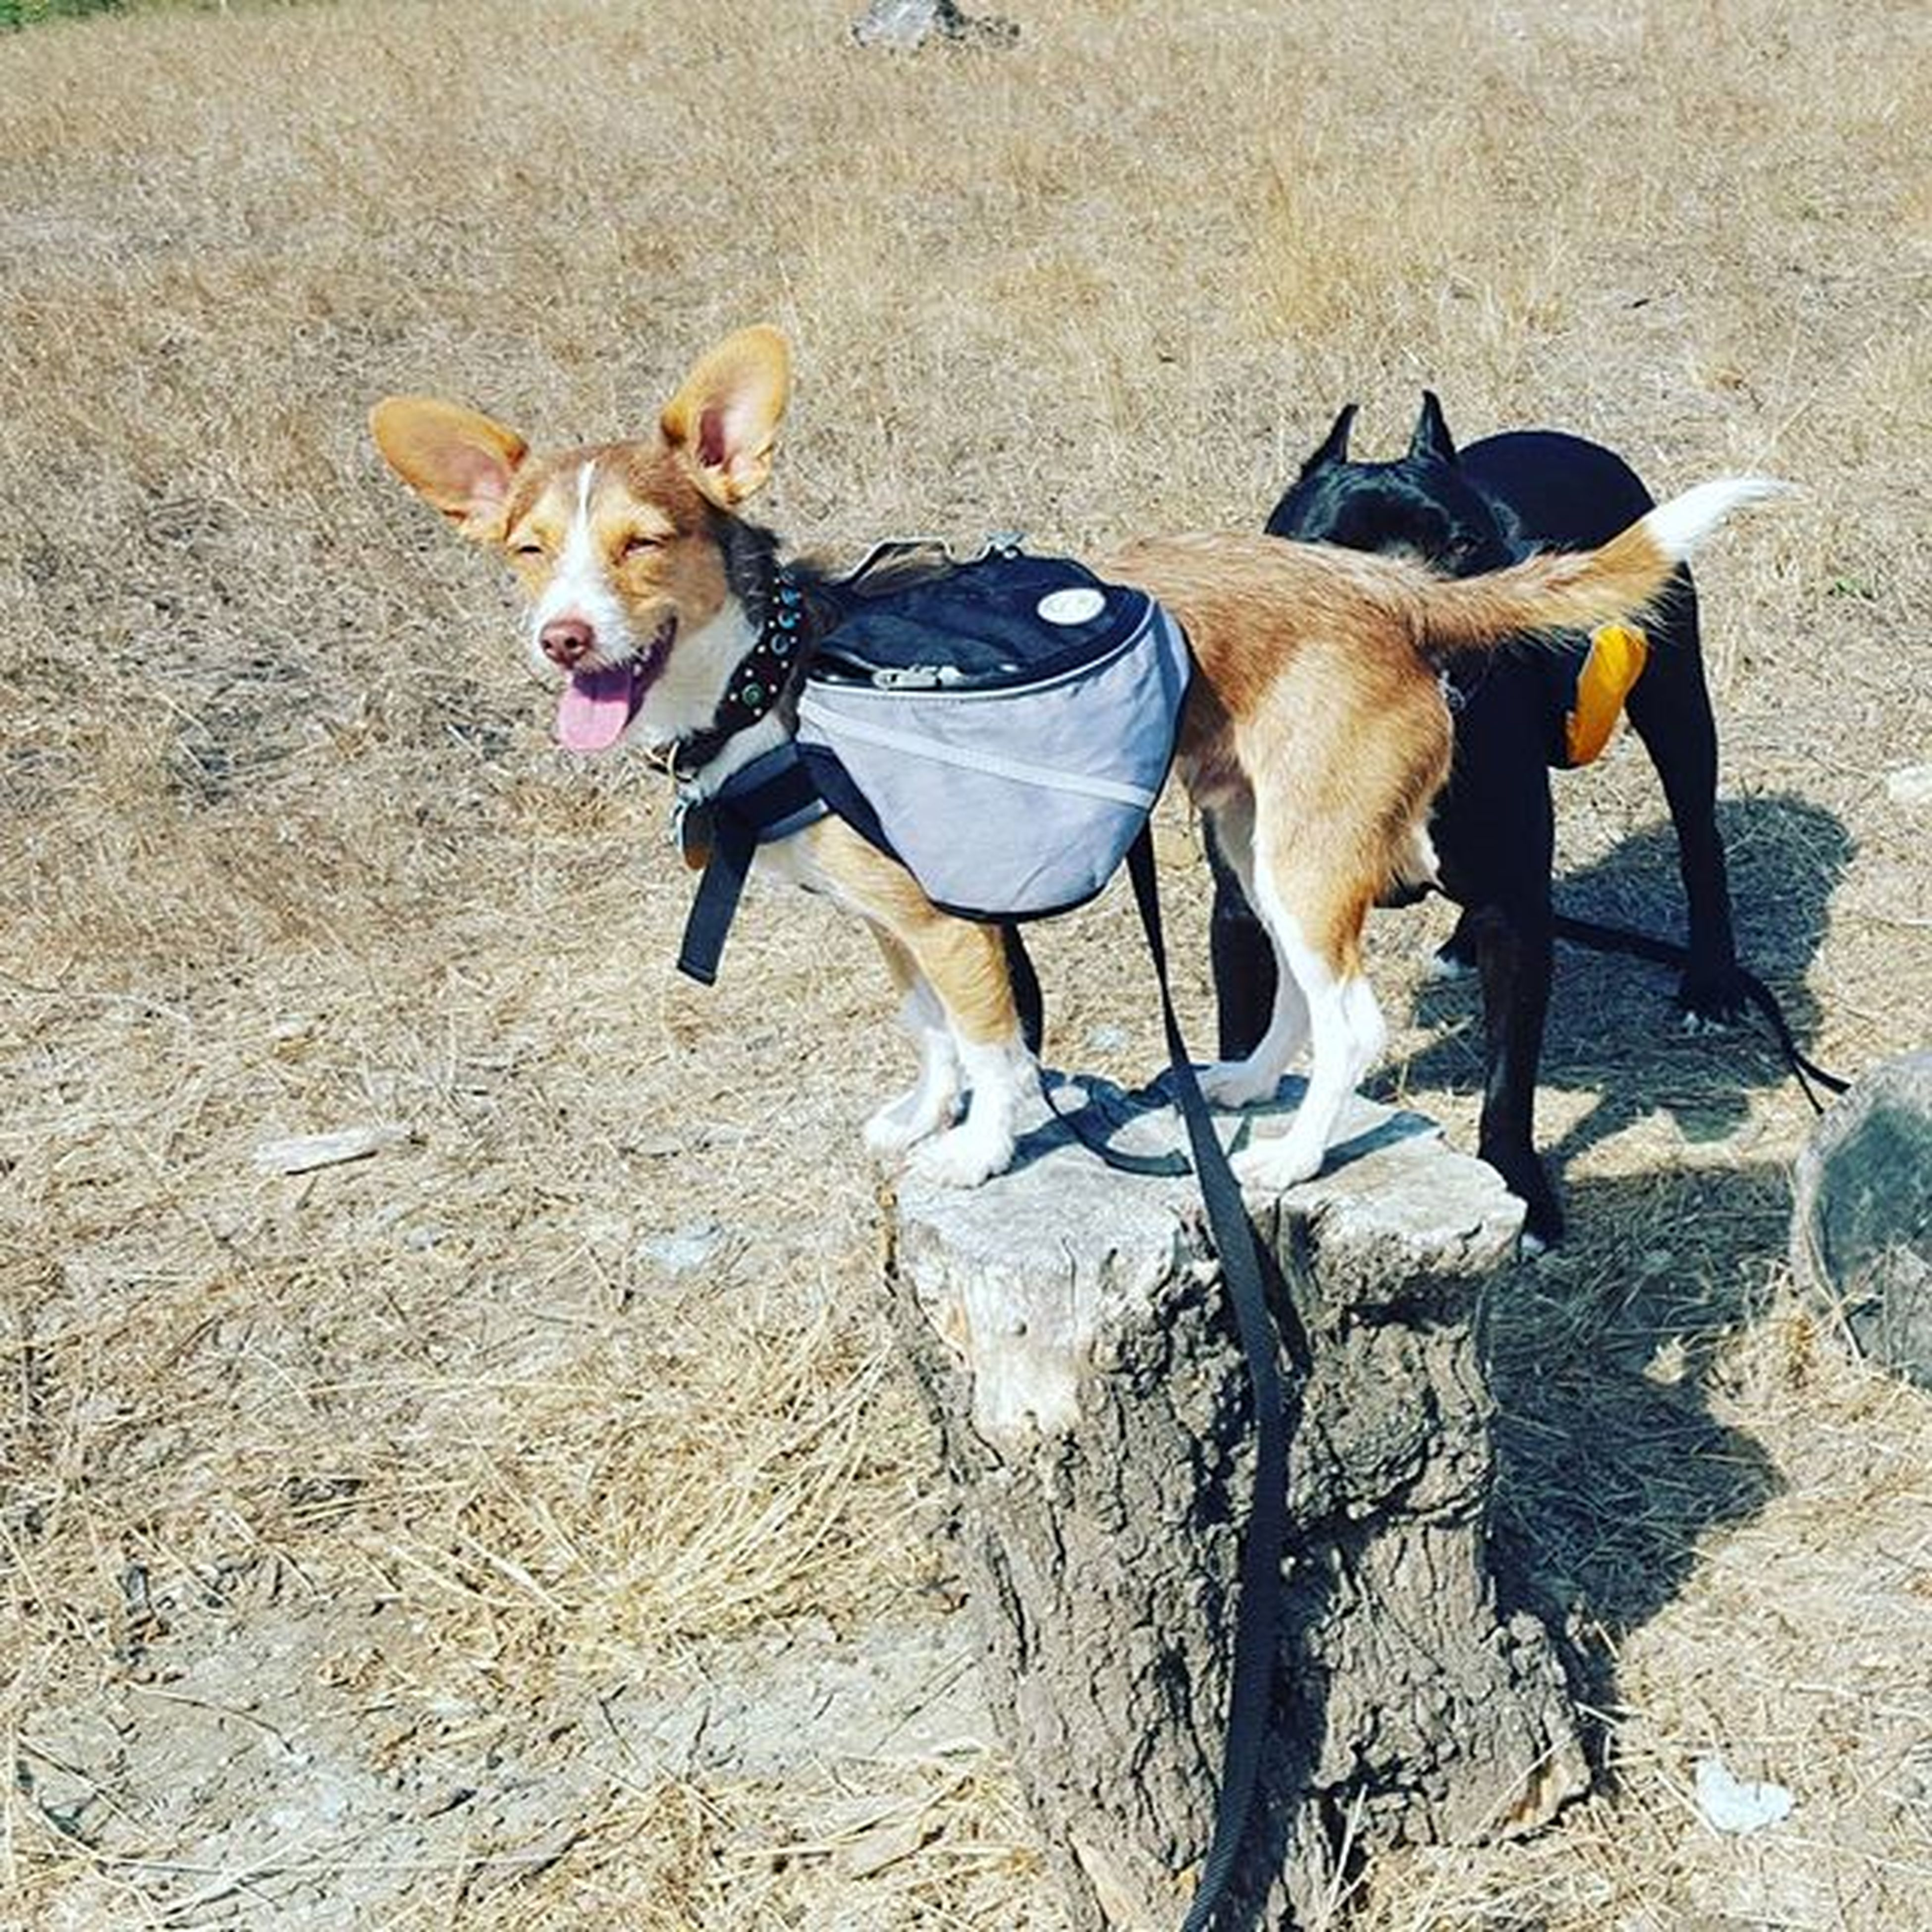 domestic animals, dog, animal themes, pets, mammal, one animal, high angle view, full length, pet leash, two animals, pet collar, sunlight, sand, street, canine, shadow, outdoors, standing, day, zoology